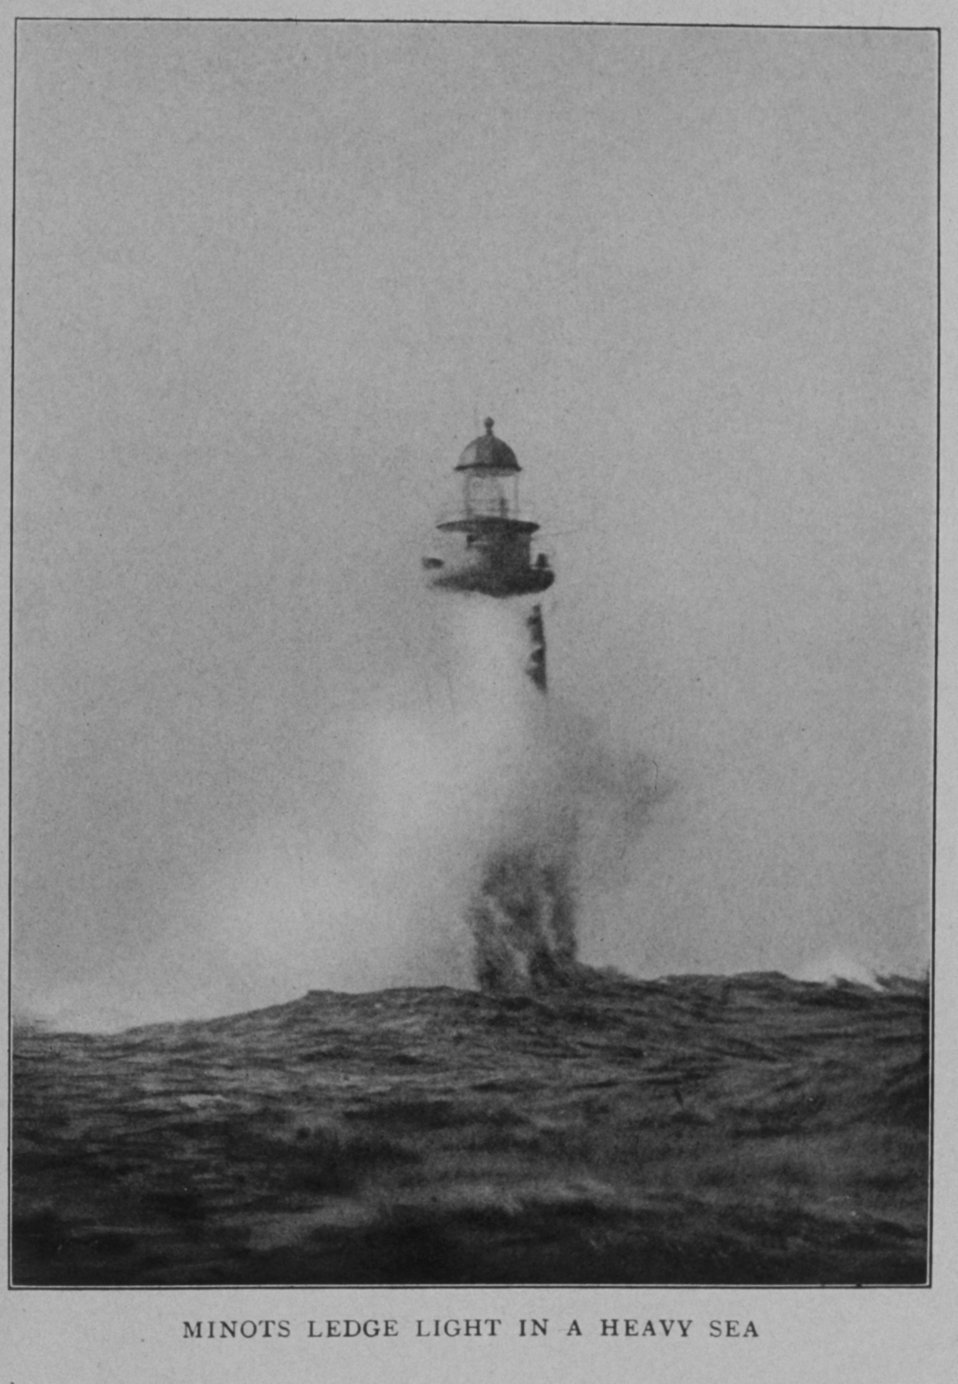 Minots Ledge Light in a heavy sea, off Boston Harbor. In: 'Lighthouses and Lightships of the United States' by George R. Putnam, 1917.  Houghton Mifflin and Company, Boston.  Frontispiece. Library Call No. 527.7 P98.